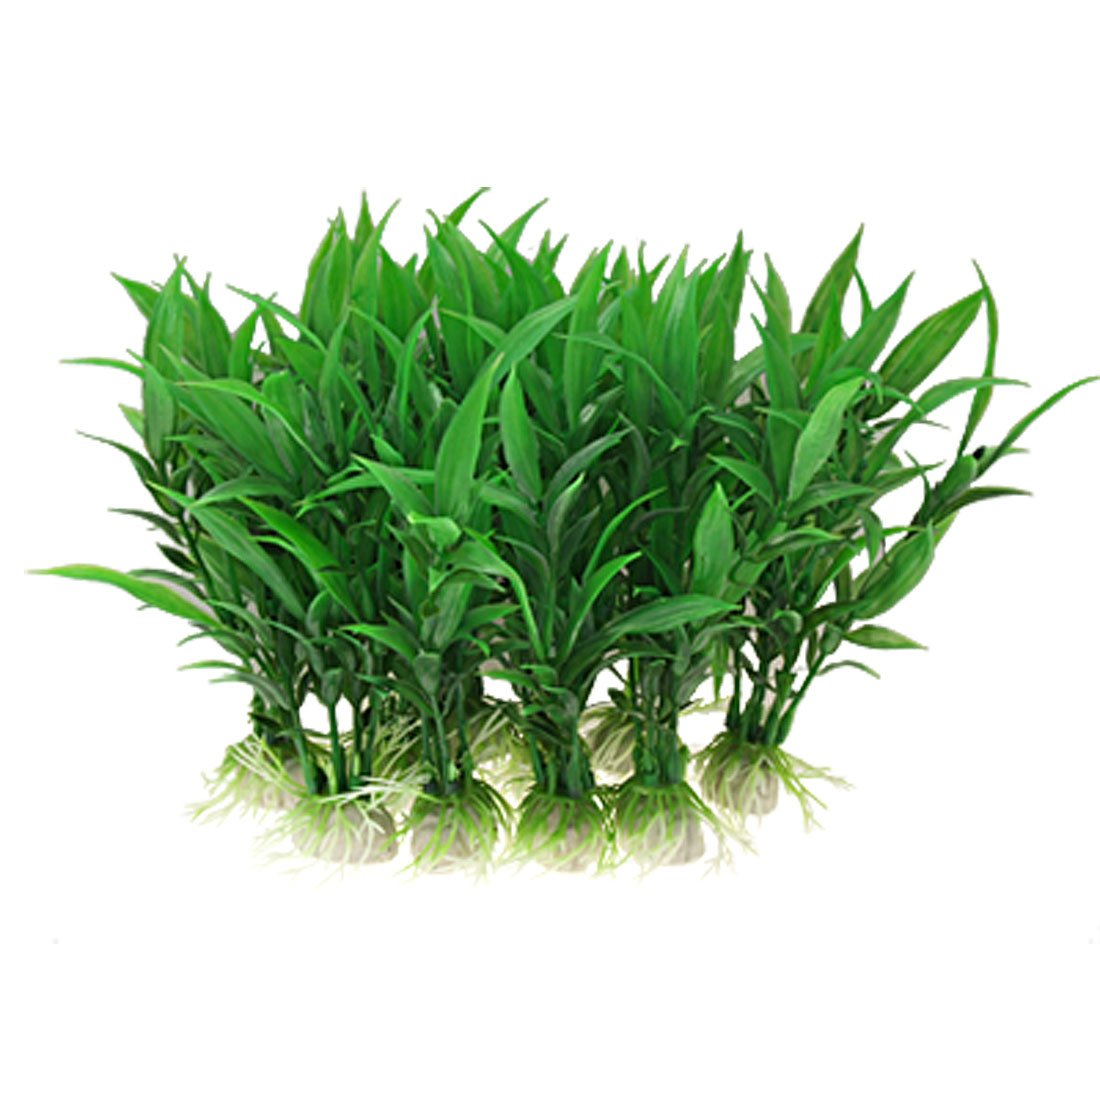 Amazon.com : Jardin Plastic Aquarium Tank Plants Grass Decoration,  10 Piece, Green : Pet Supplies